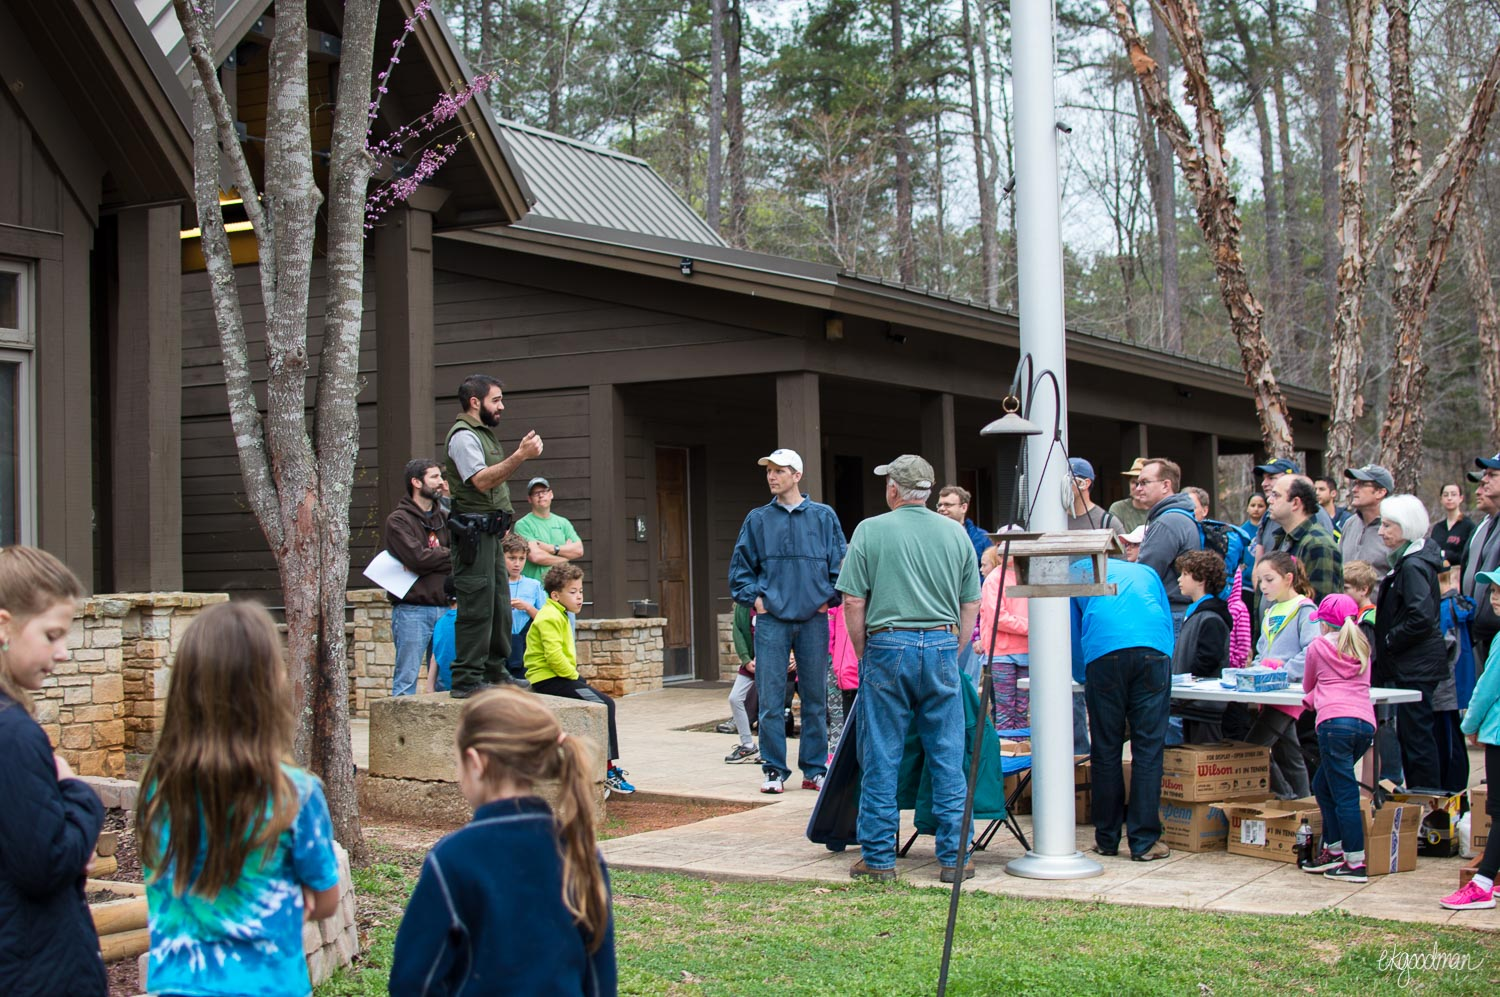 A park ranger gives his spiel on the park history and watershed.